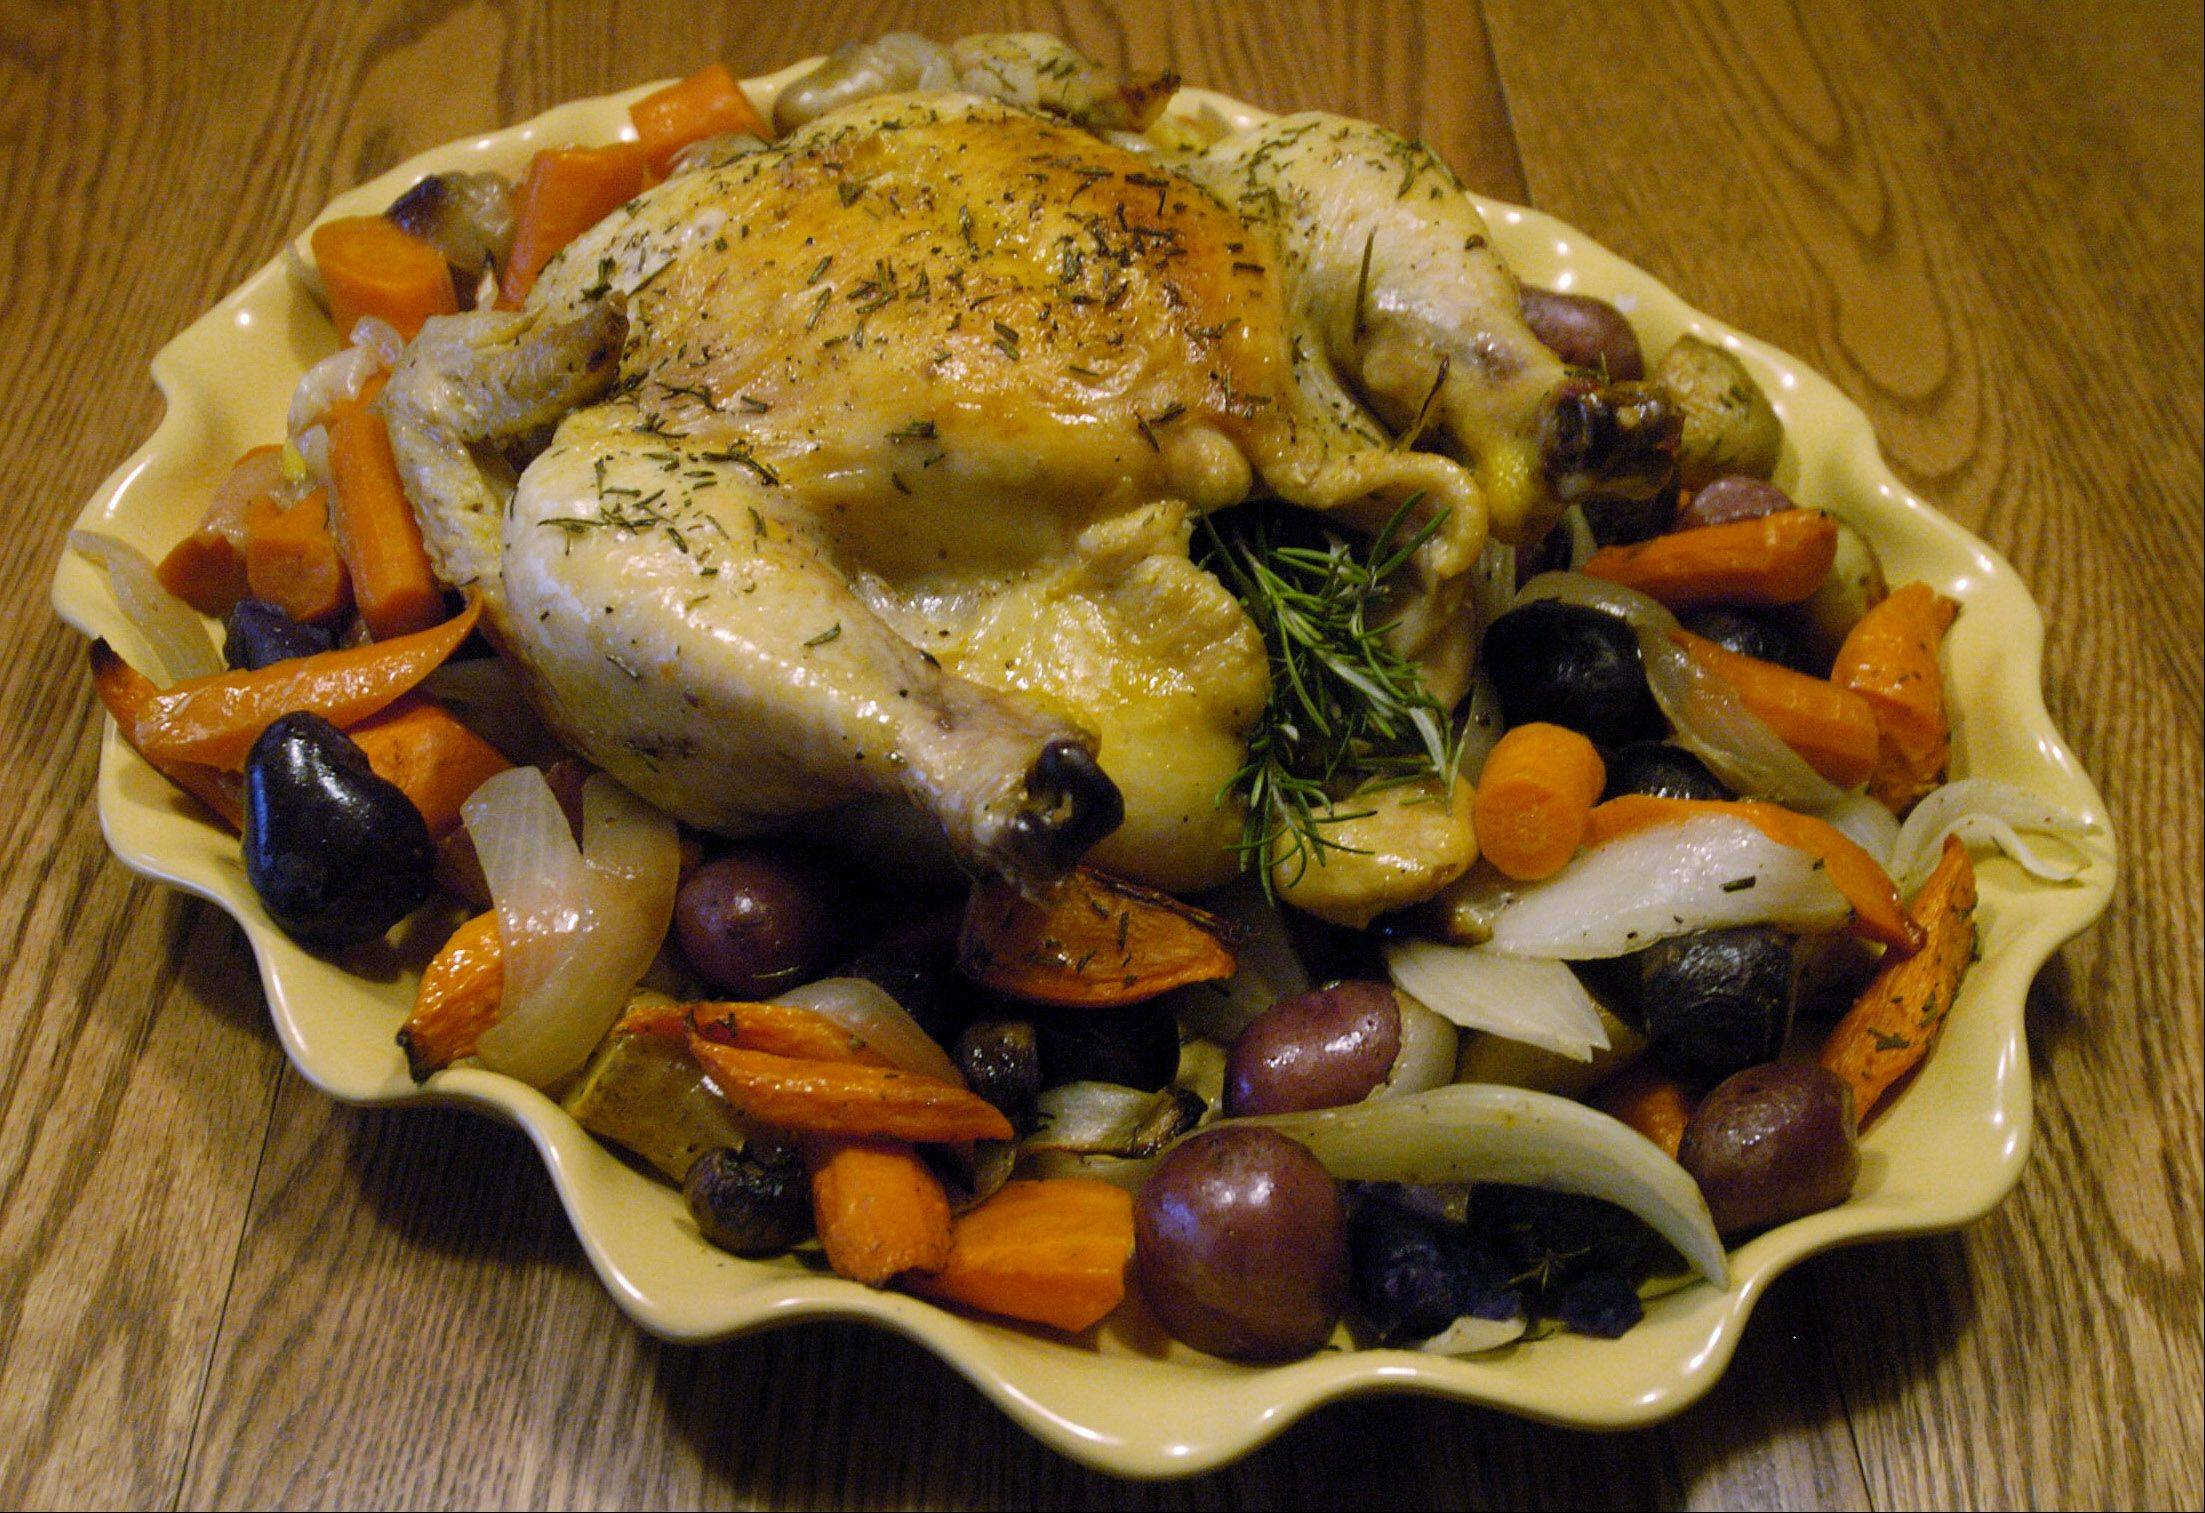 A Dutch oven is the perfect vessel for cooking roasted chicken and vagetables.